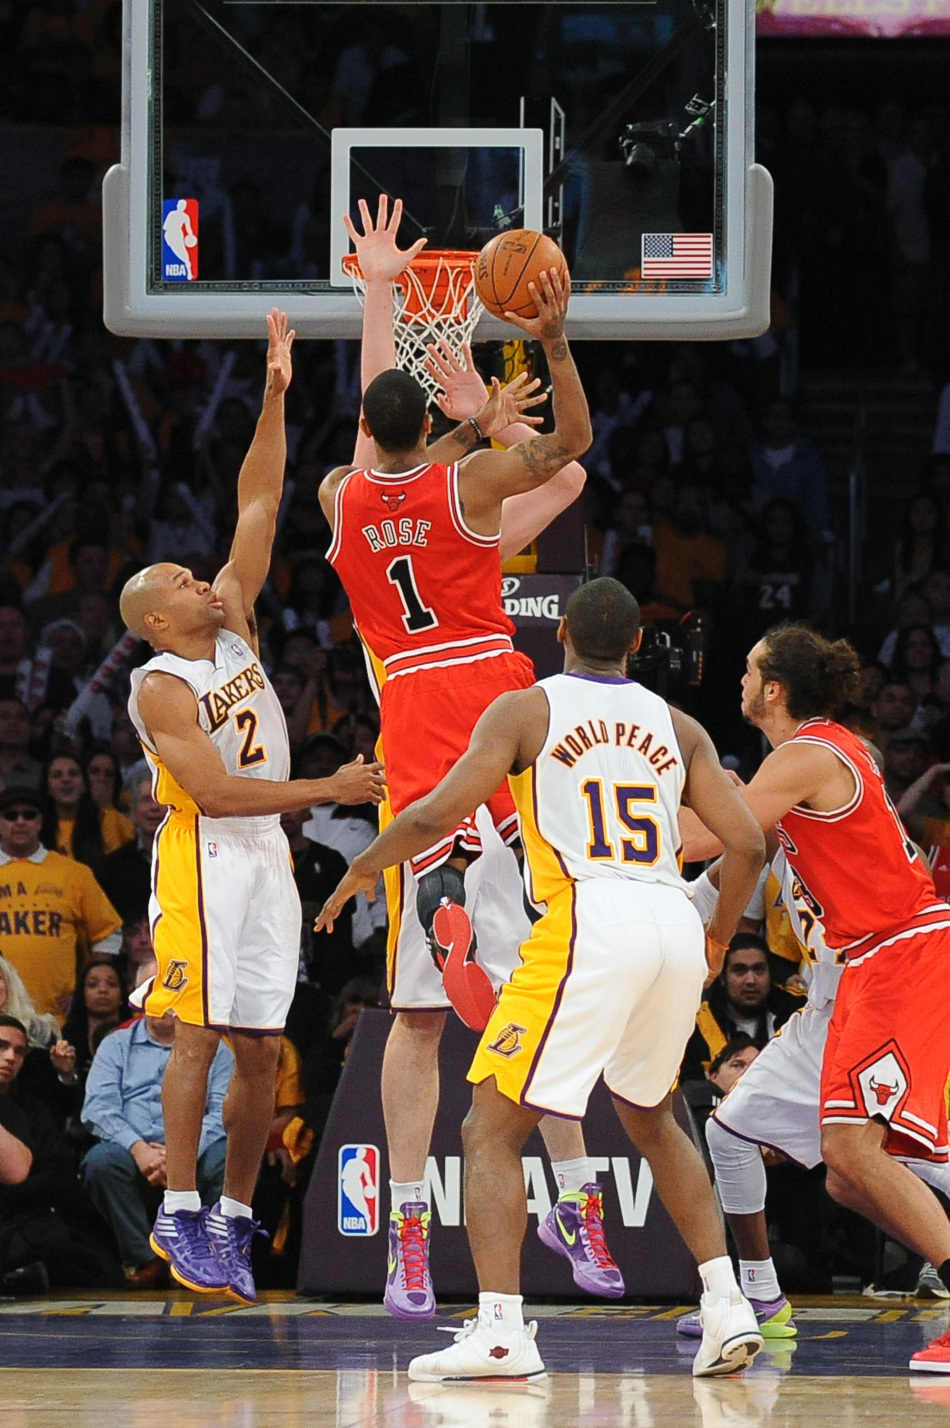 Chicago Bulls guard Derrick Rose puts up a shot to give the Bulls the lead in the final seconds, as Los Angeles Lakers forward Pau Gasol defends during an NBA basketball game, Sunday, Dec. 25, 2011, in Los Angeles. [Source:Sina.com]